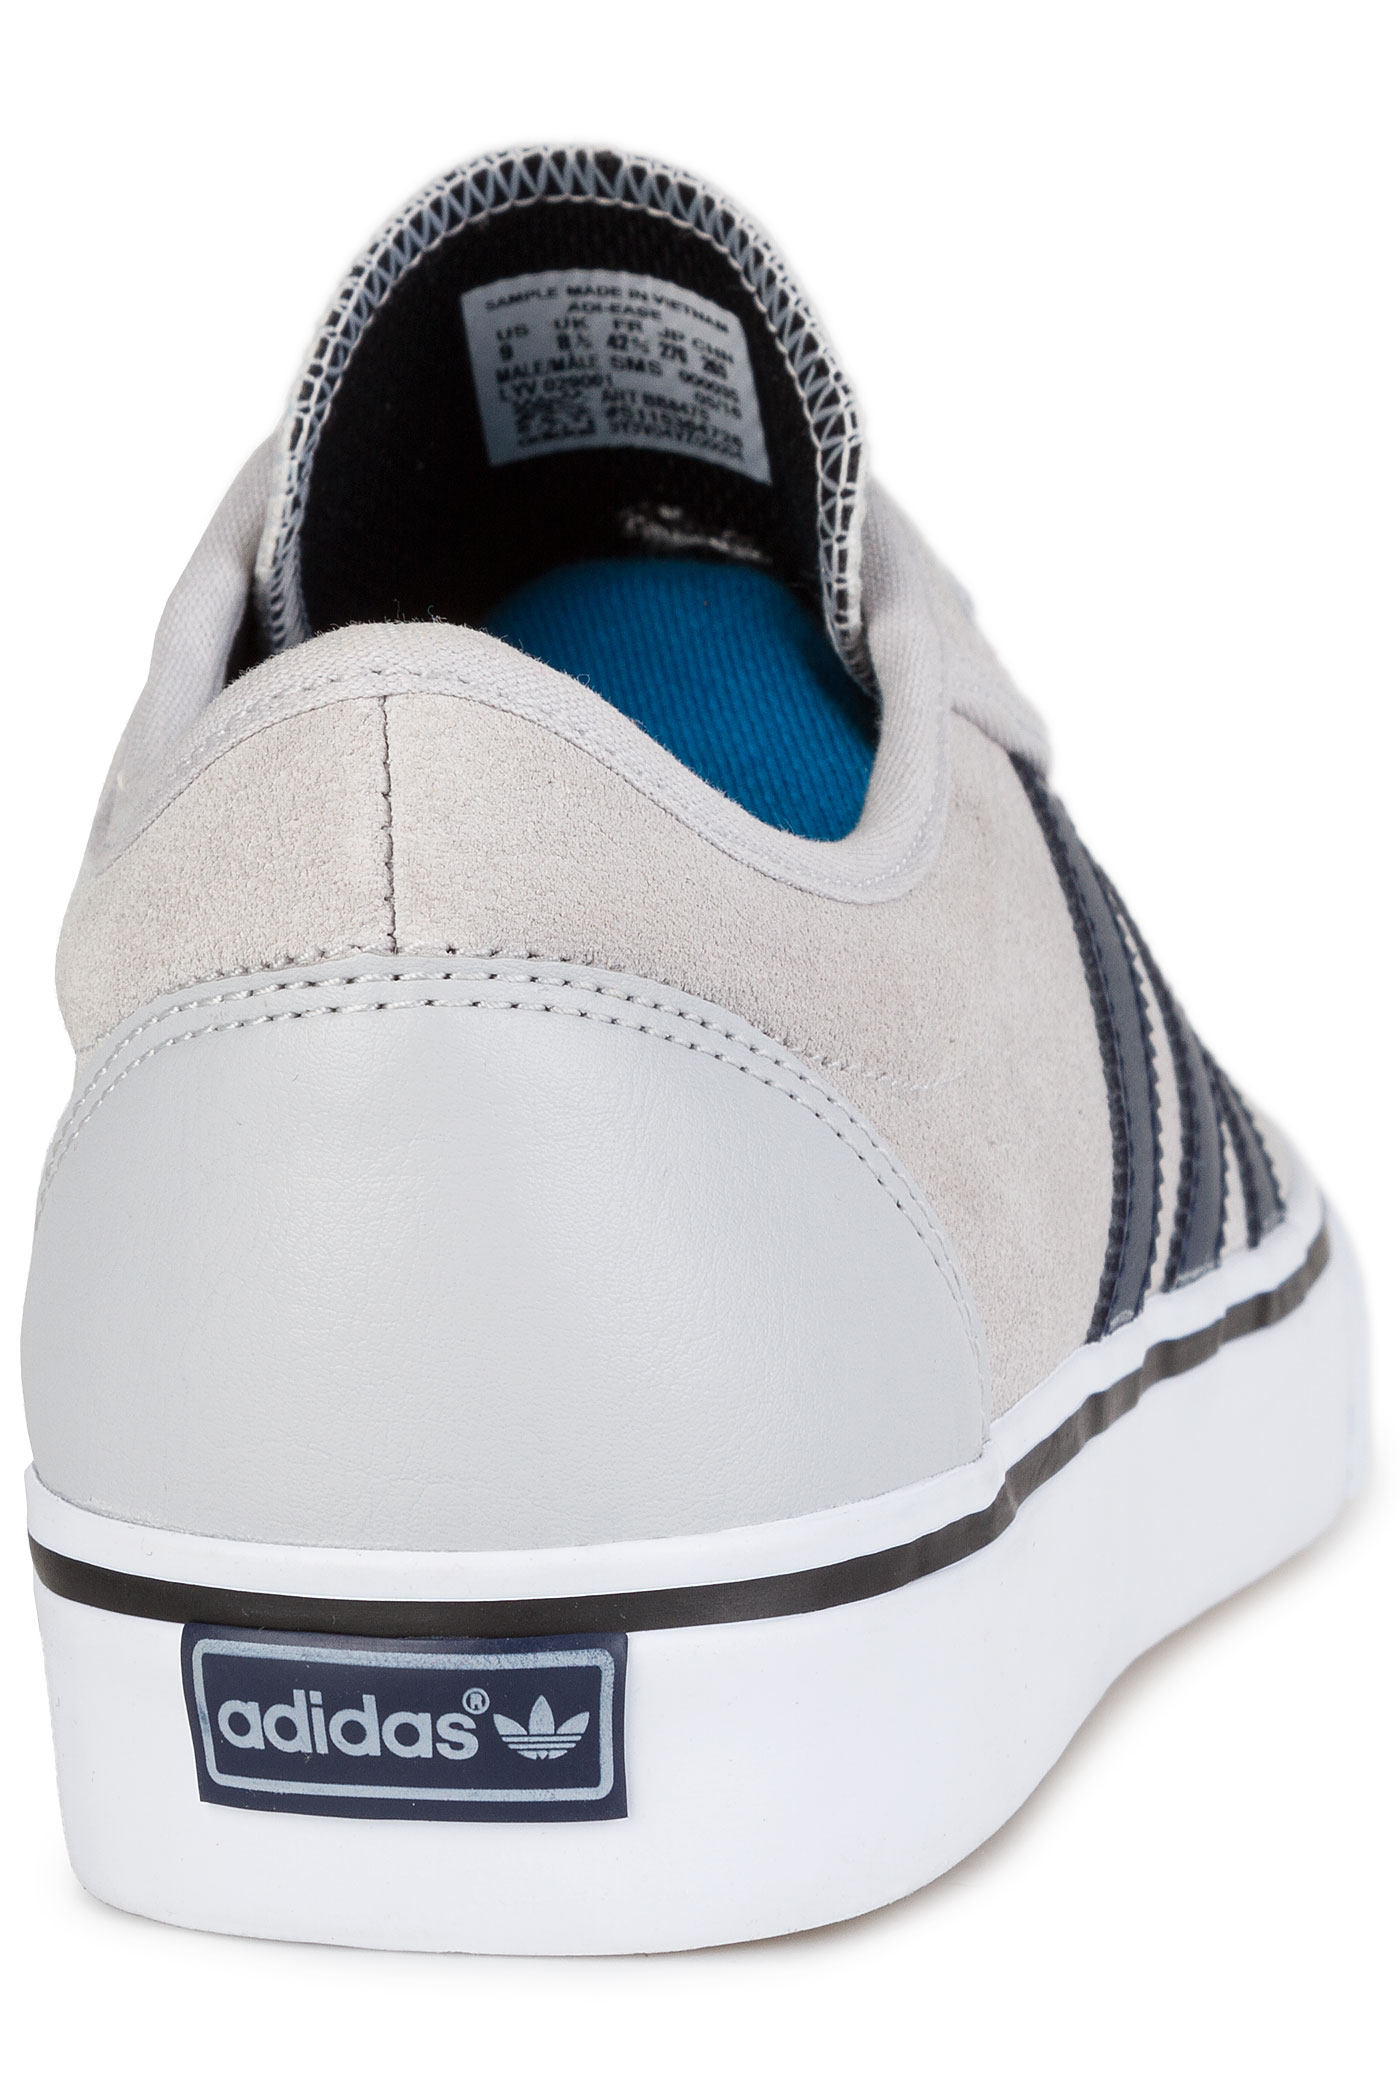 new arrival 9888f cd835 adidas Adi Ease Shoe (light solid grey collegiate navy)